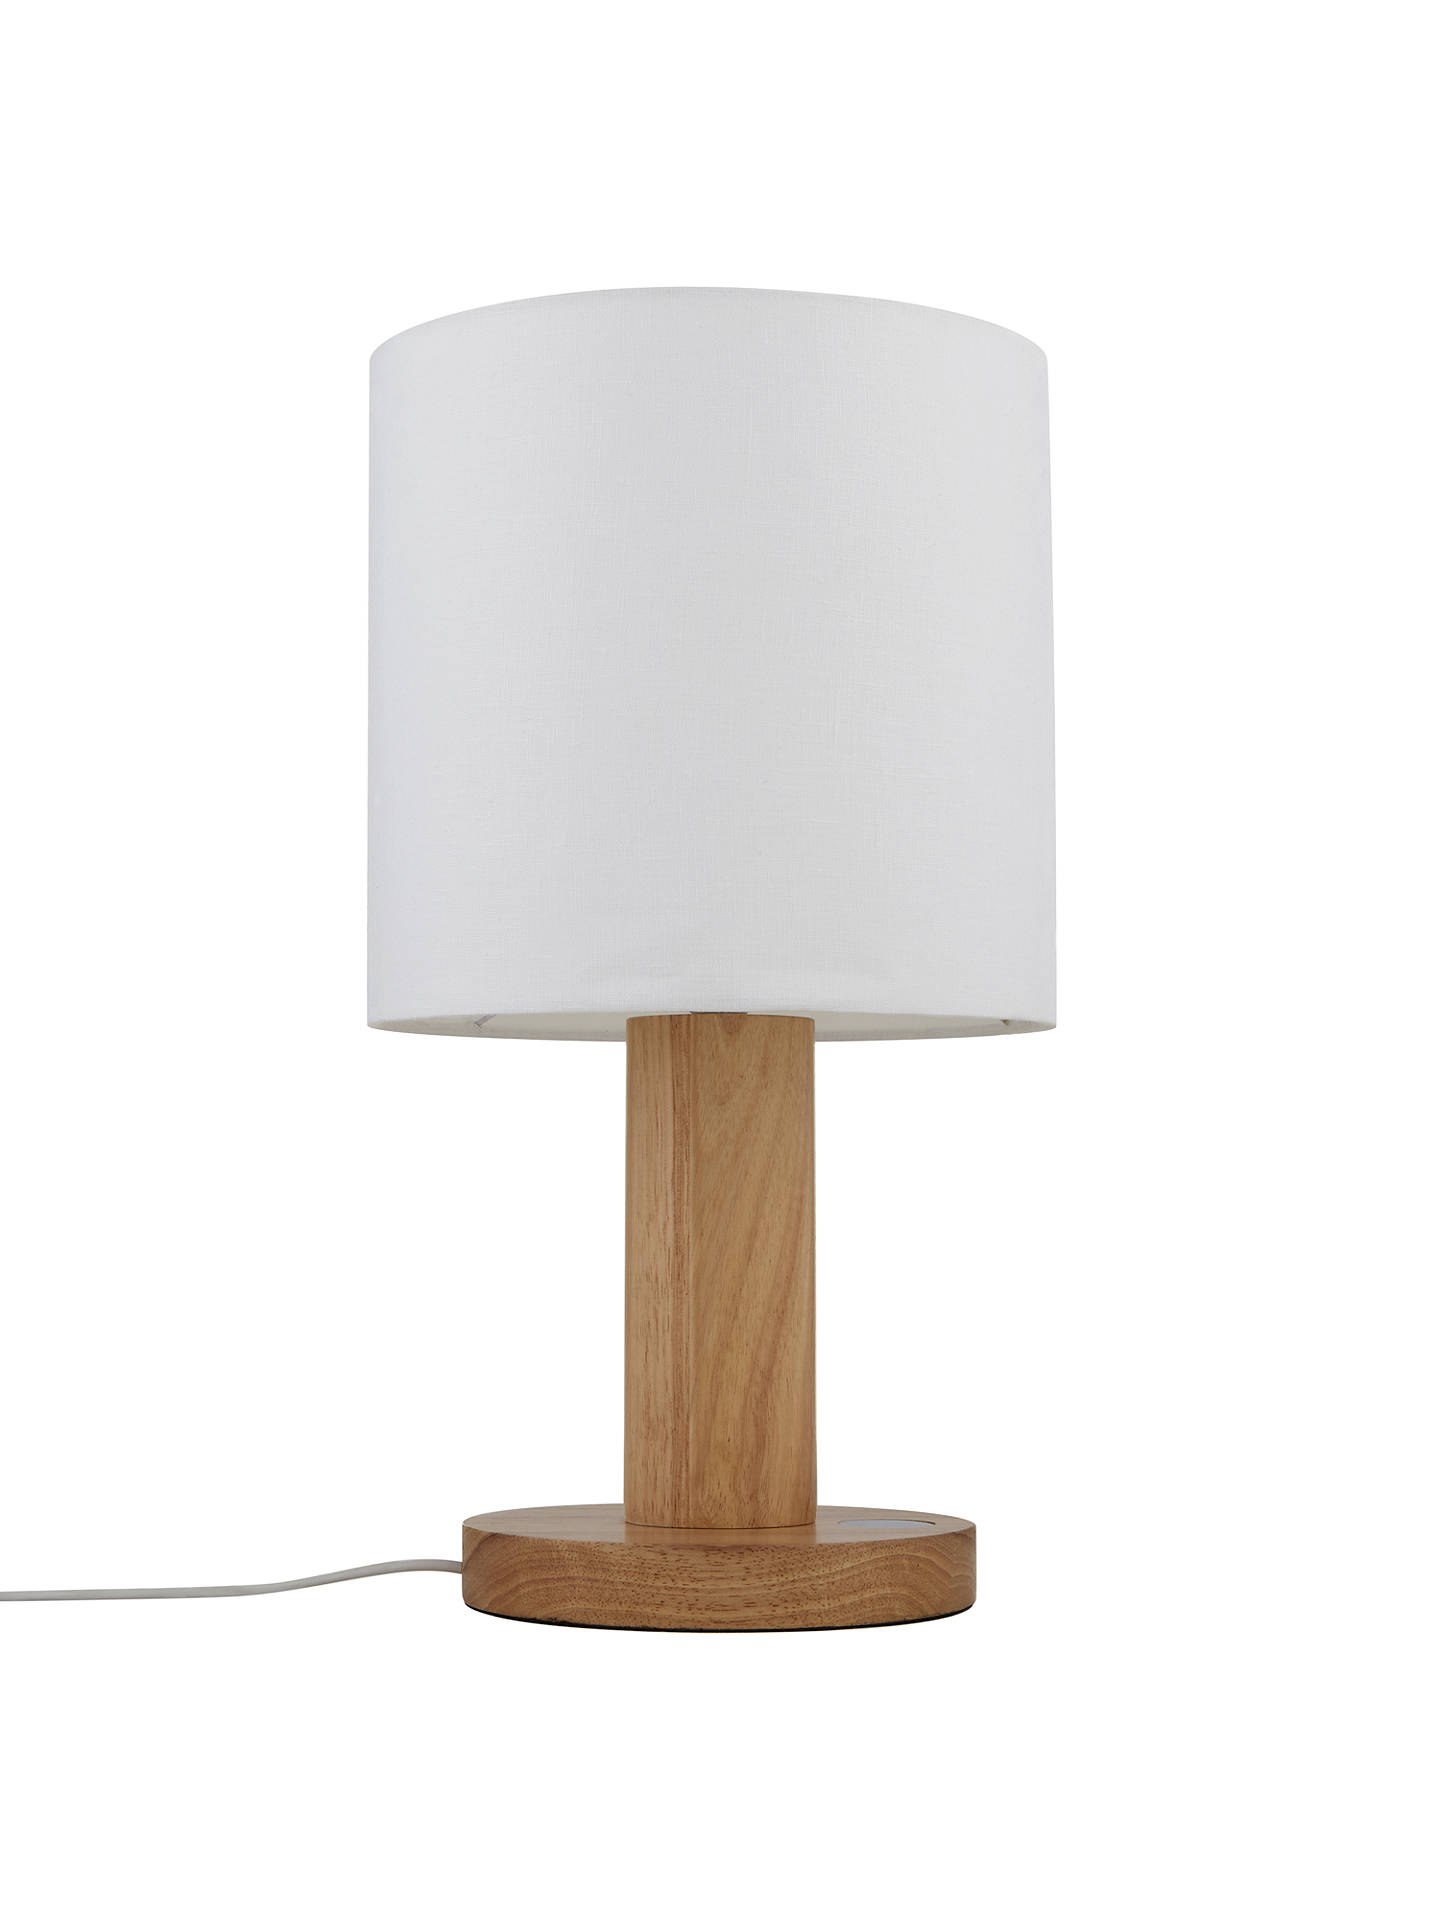 BuyJohn Lewis Slater Large Wooden Touch Lamp, Light Wood Online at johnlewis.com